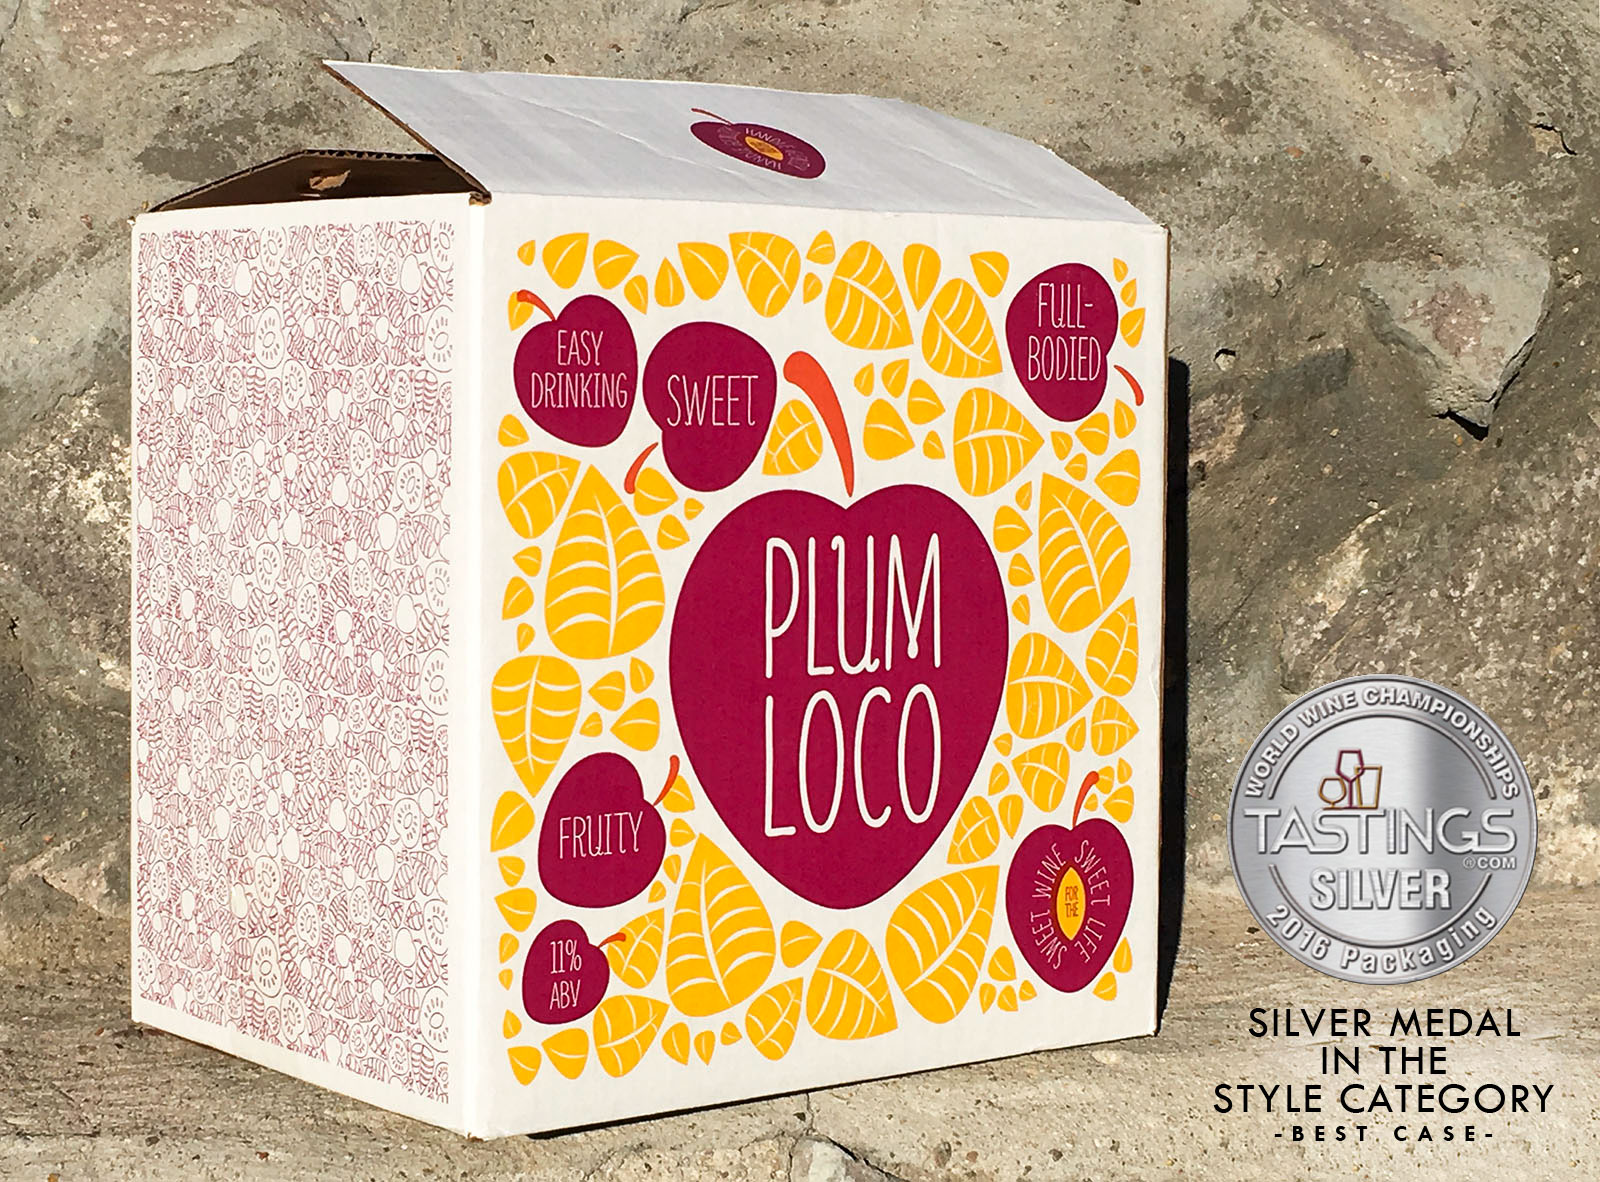 Award winning Plum Loco case designed by Miranda Williams